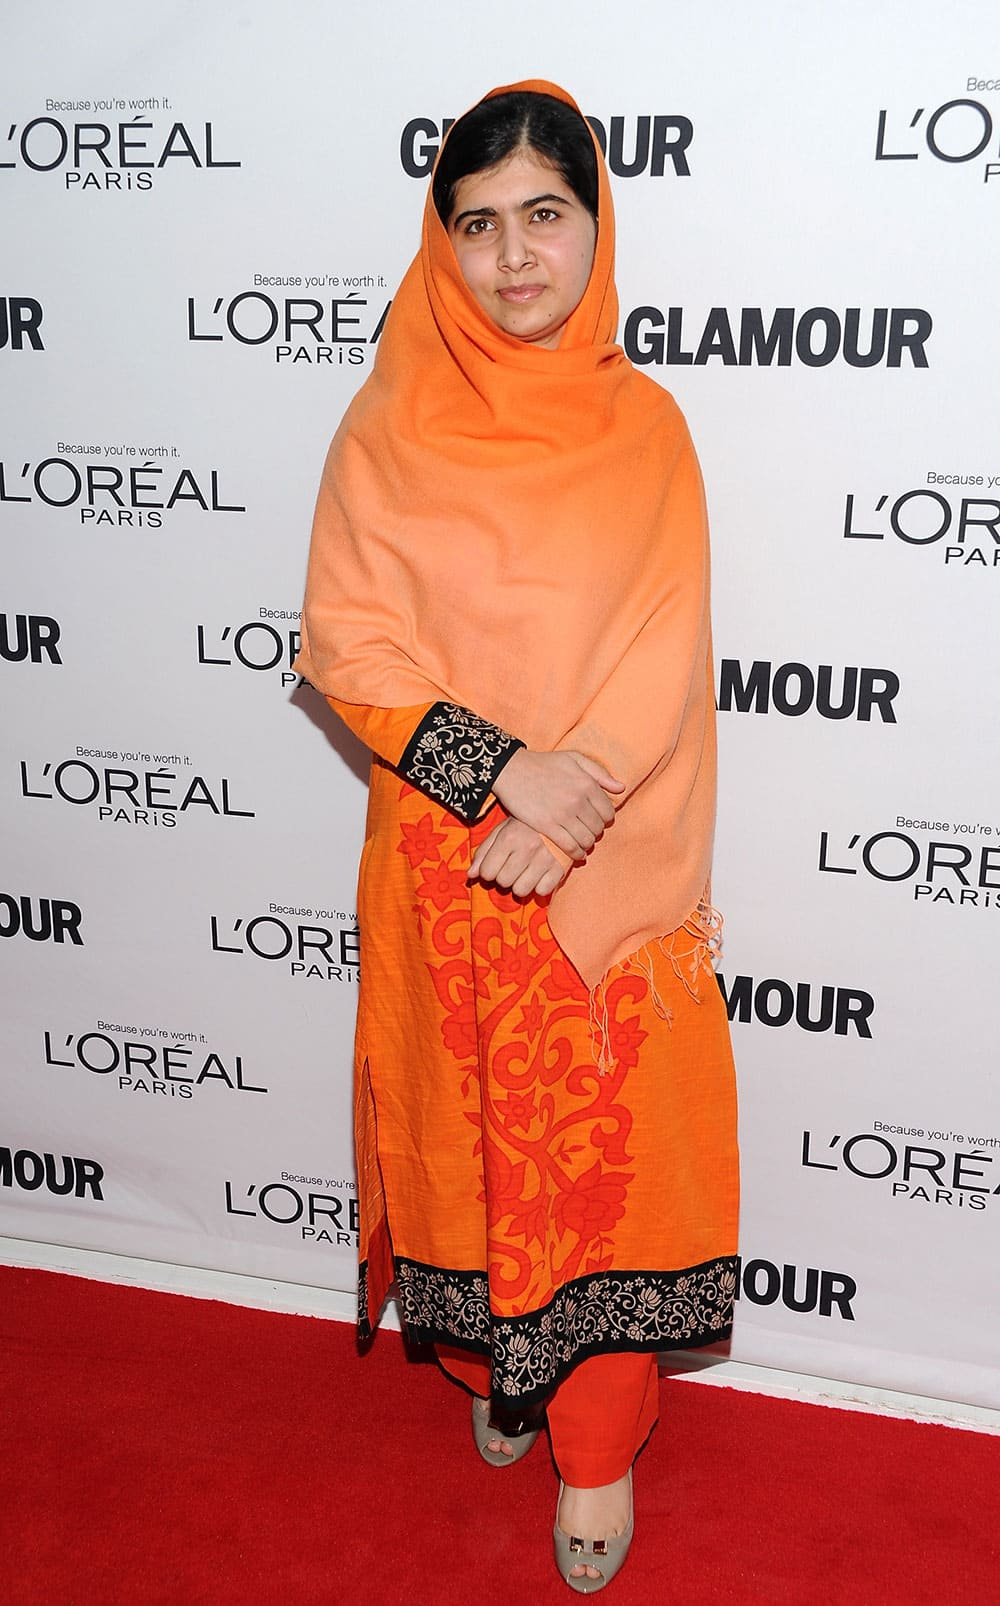 Honoree Malala Yousafzai attends the 23rd Annual Glamour Women of the Year Awards hosted by Glamour Magazine at Carnegie Hall in New York.